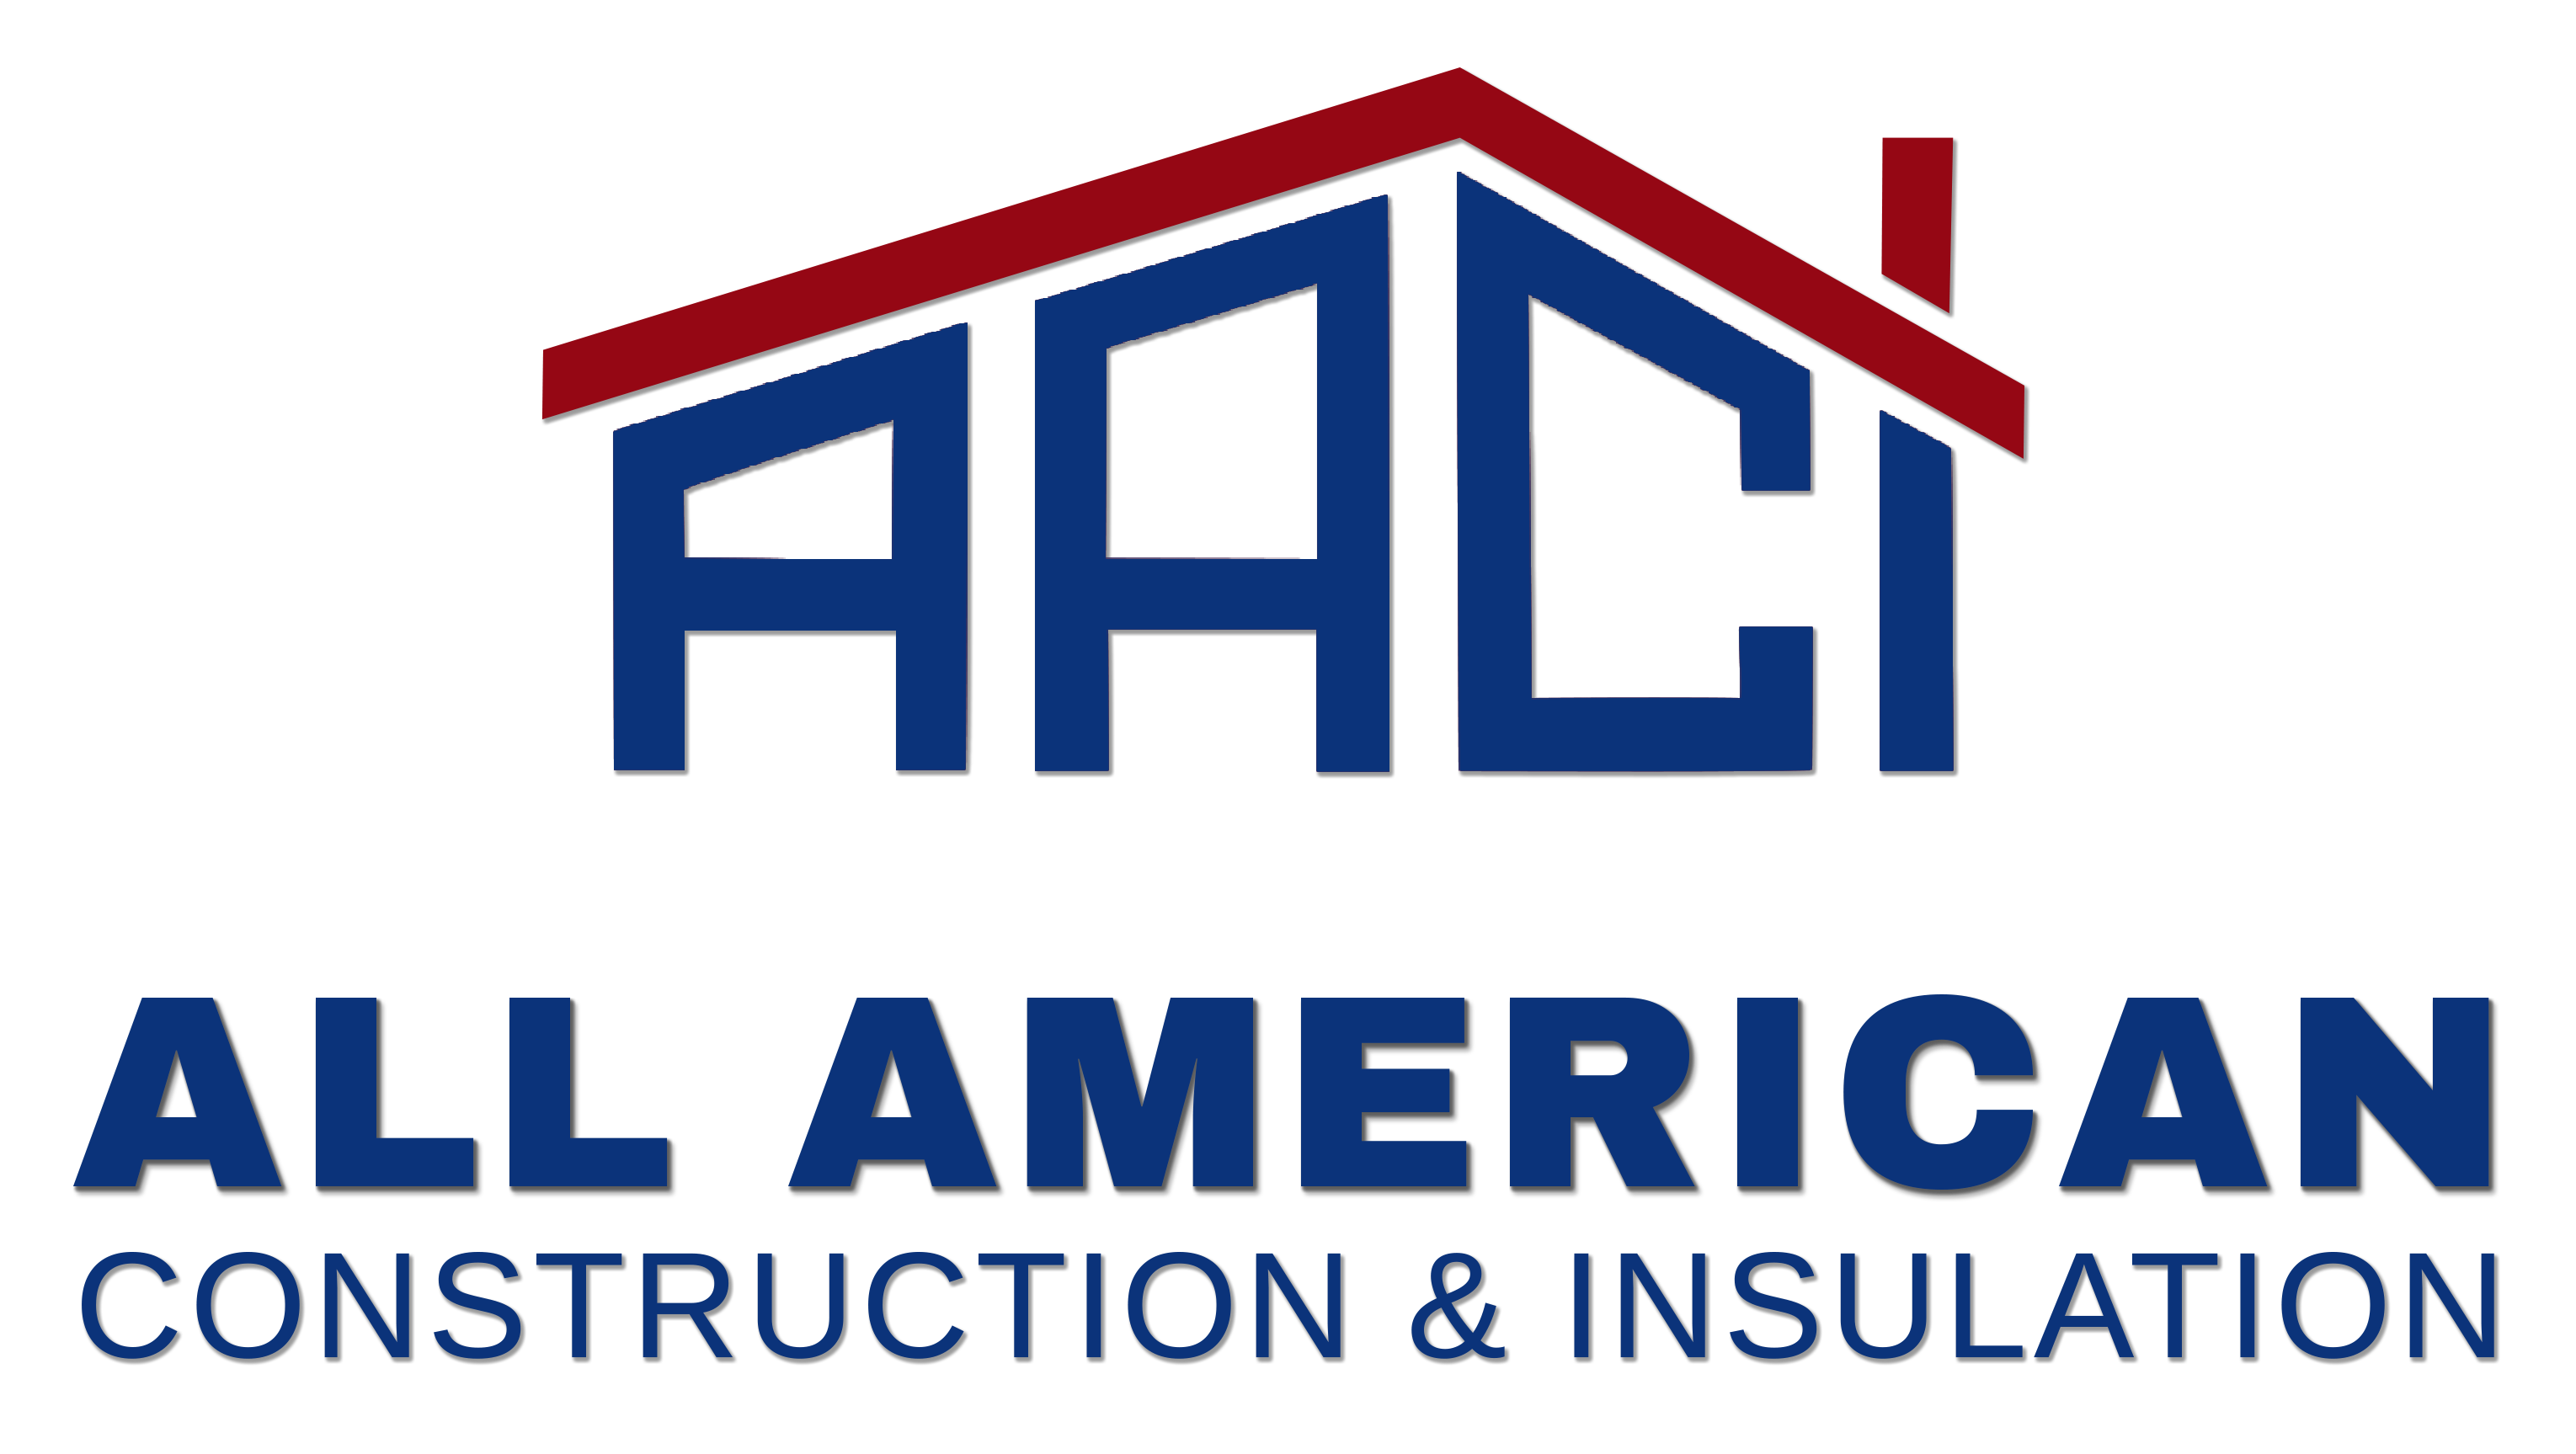 All American Construction & Insulation